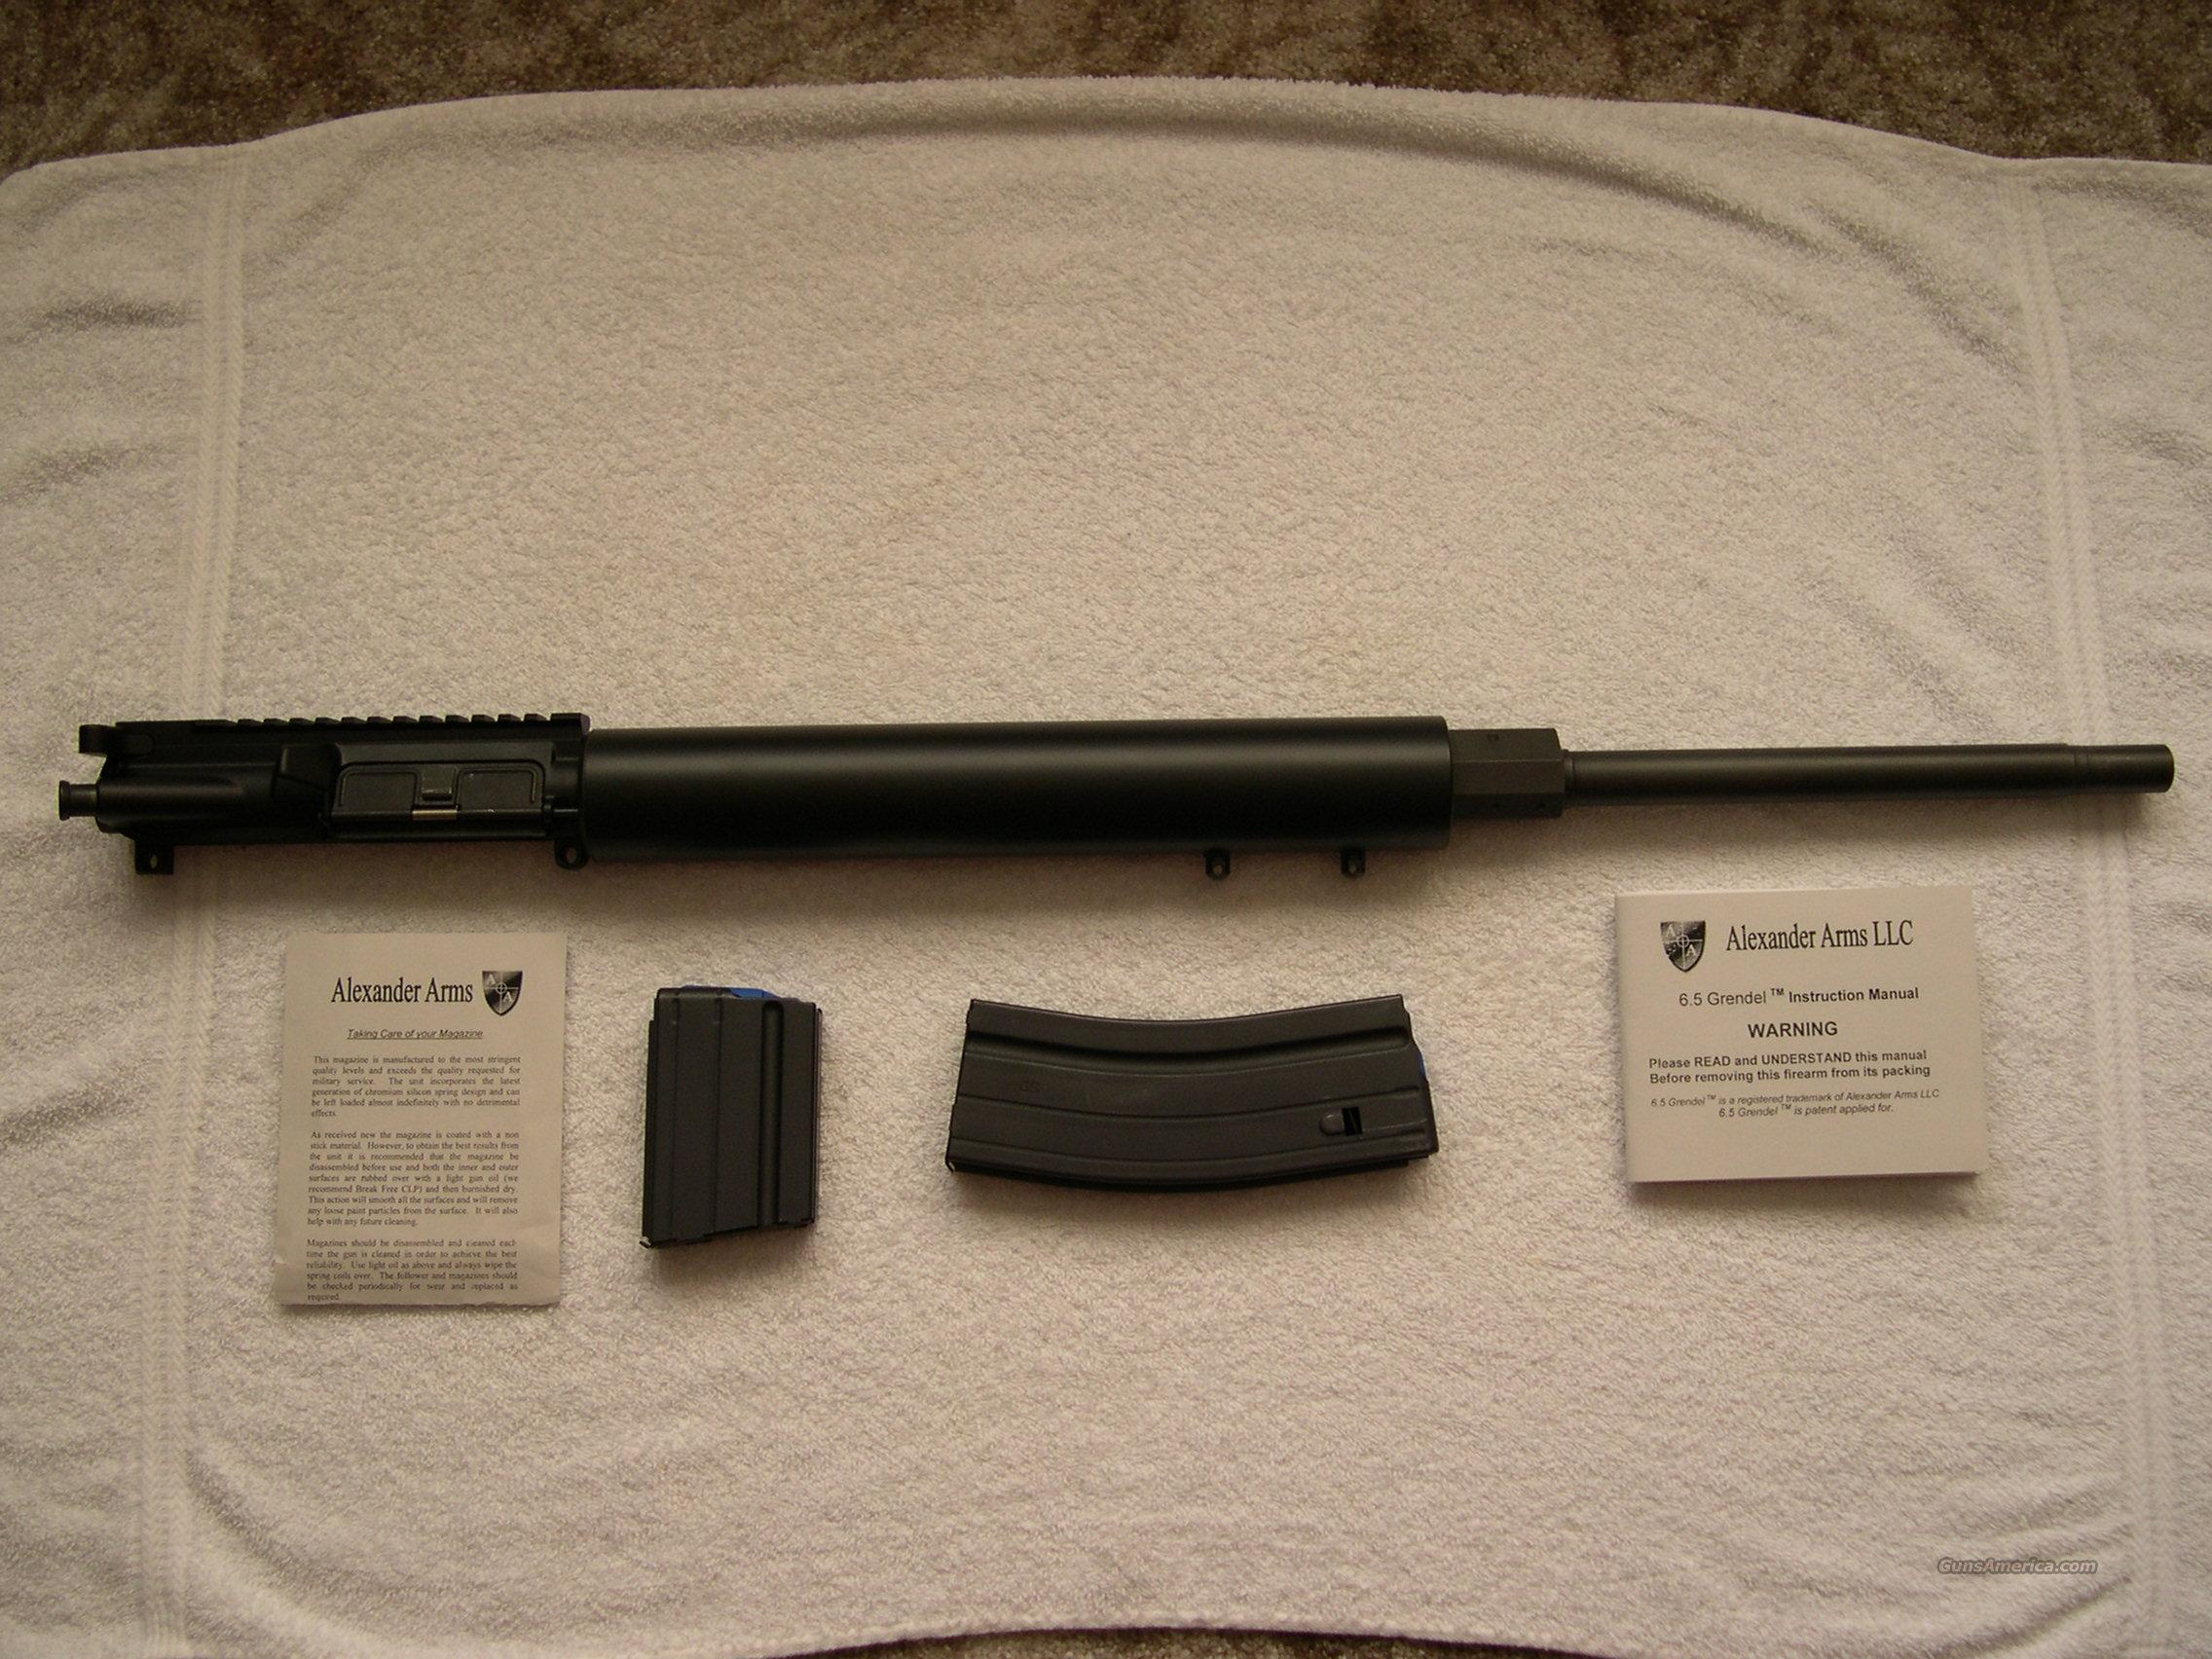 Alexander Arms 6.5 Grendel Overwatch Upper  Guns > Rifles > AR-15 Rifles - Small Manufacturers > Upper Only